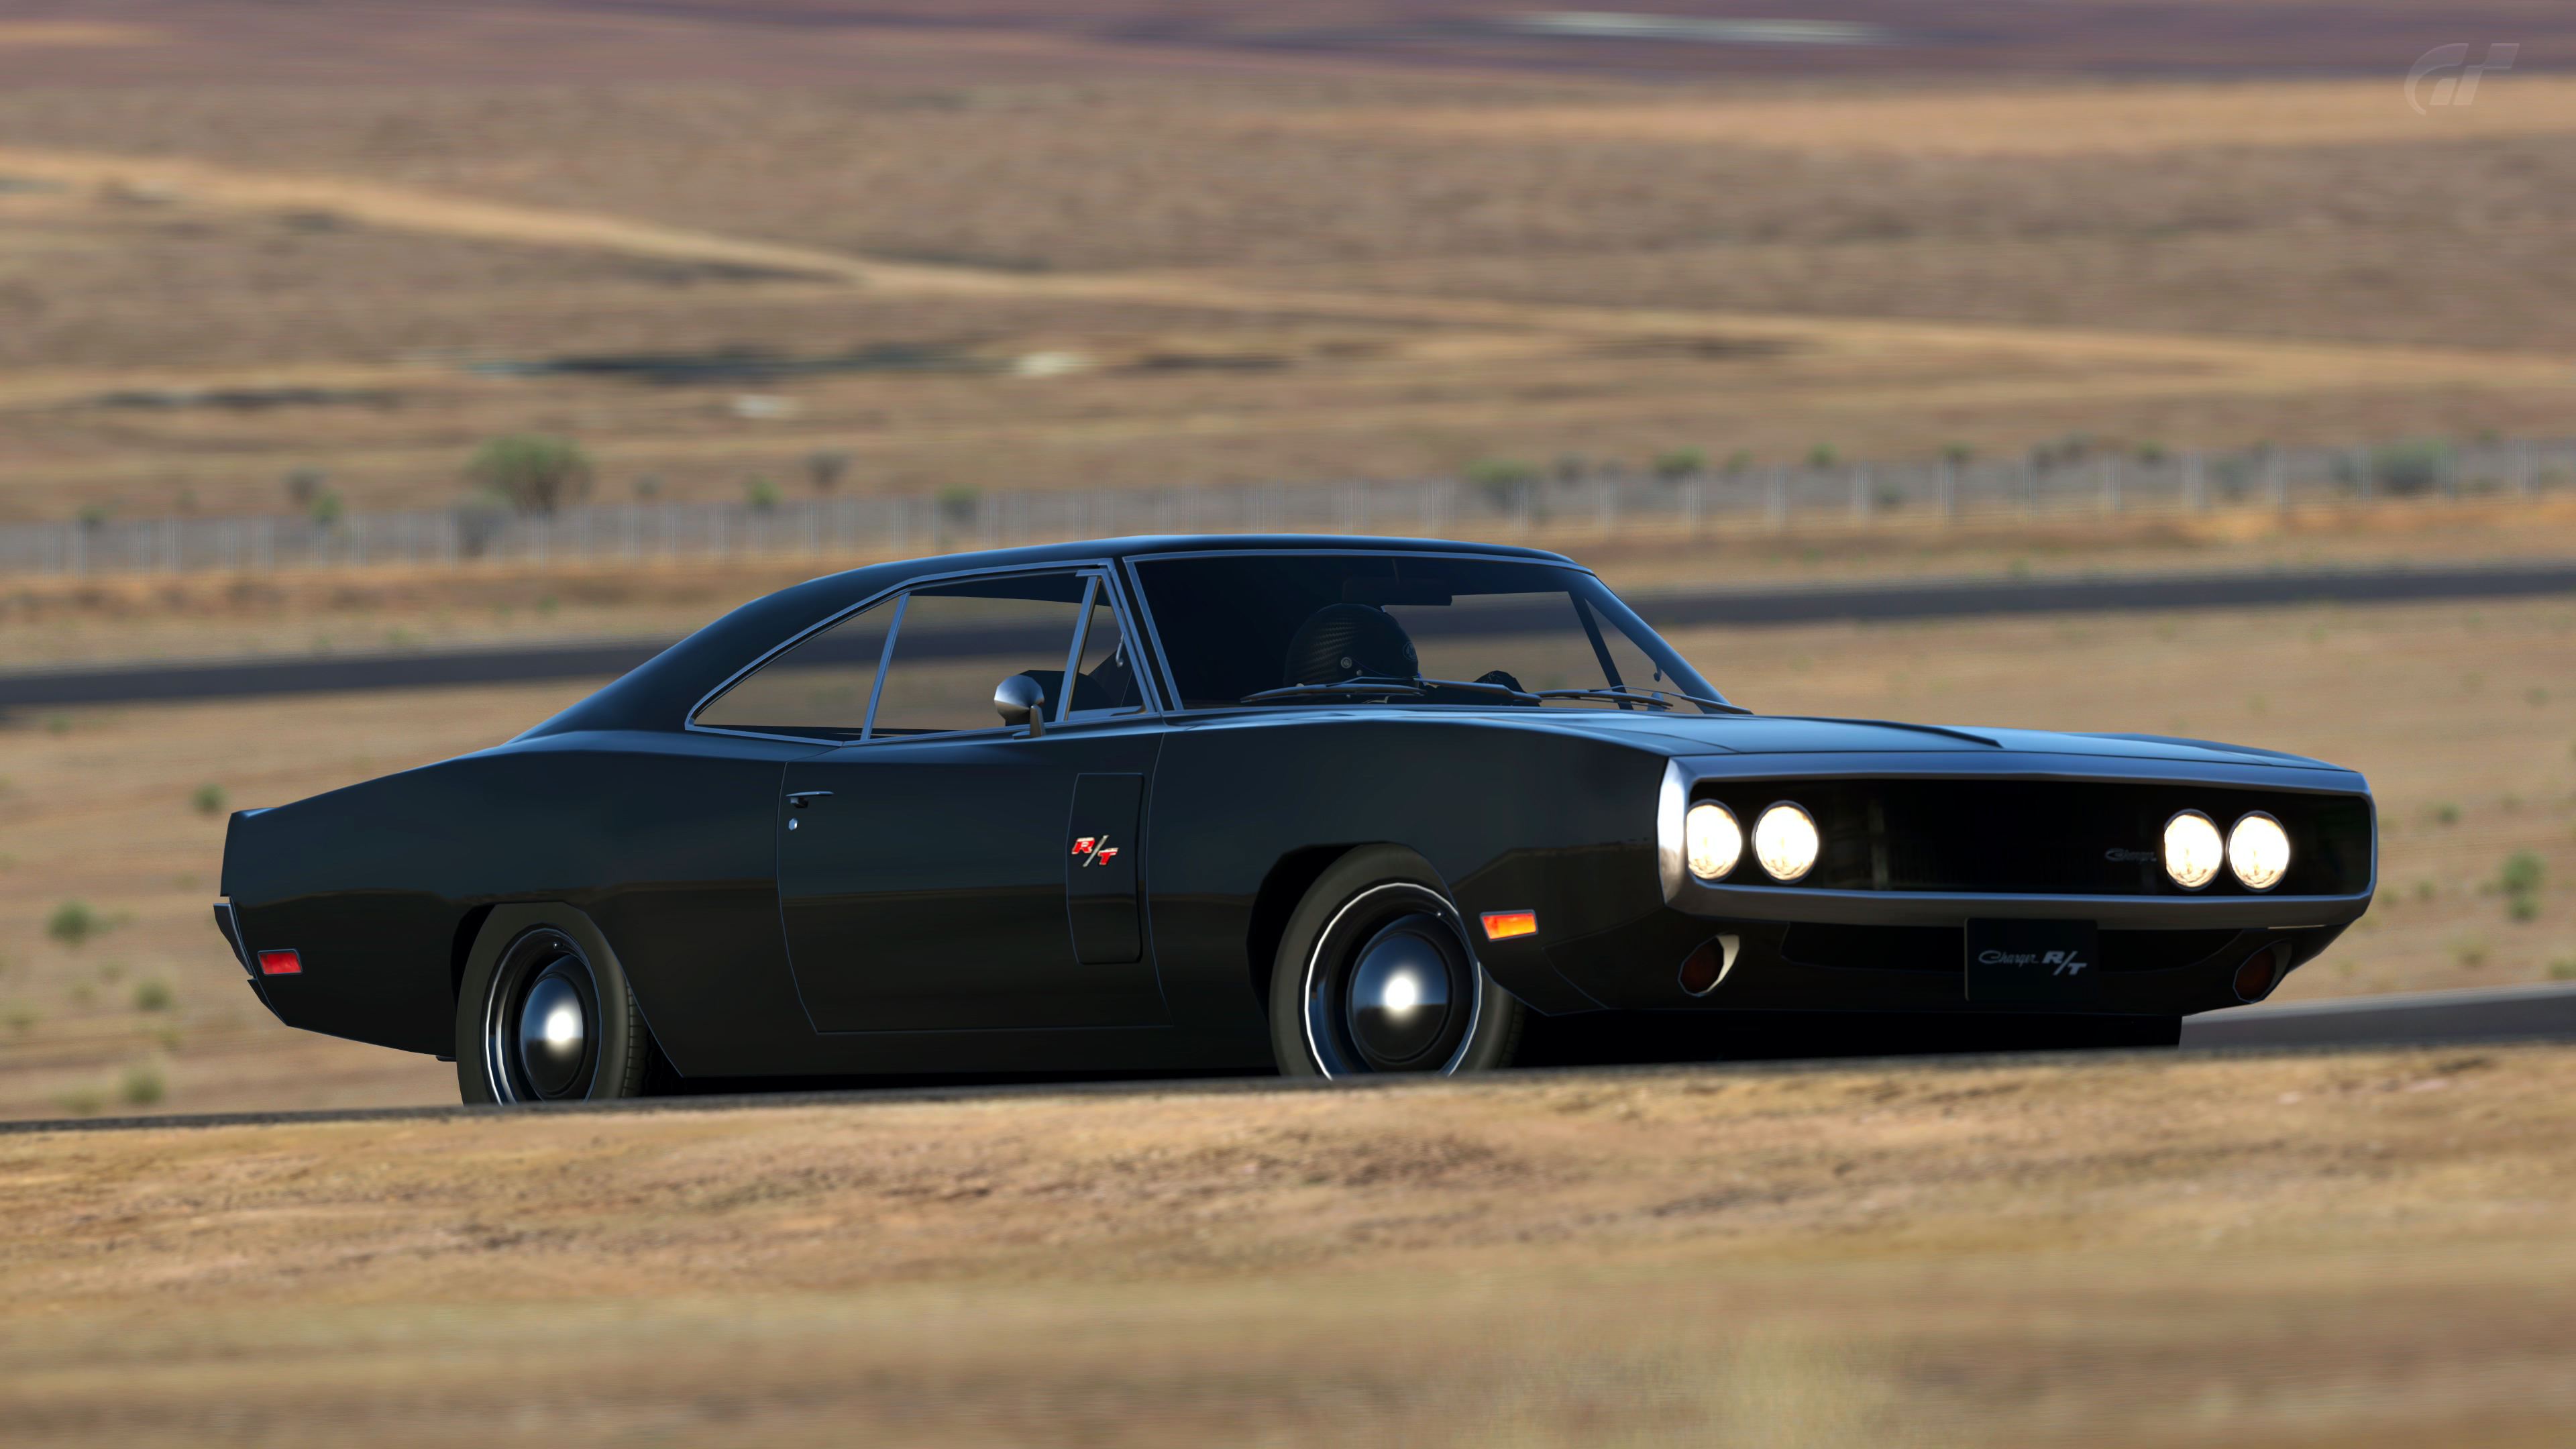 Dodge Challenger 1969 Black >> 1970 Dodge Charger 440 R/T (Gran Turismo 6) by Vertualissimo on DeviantArt